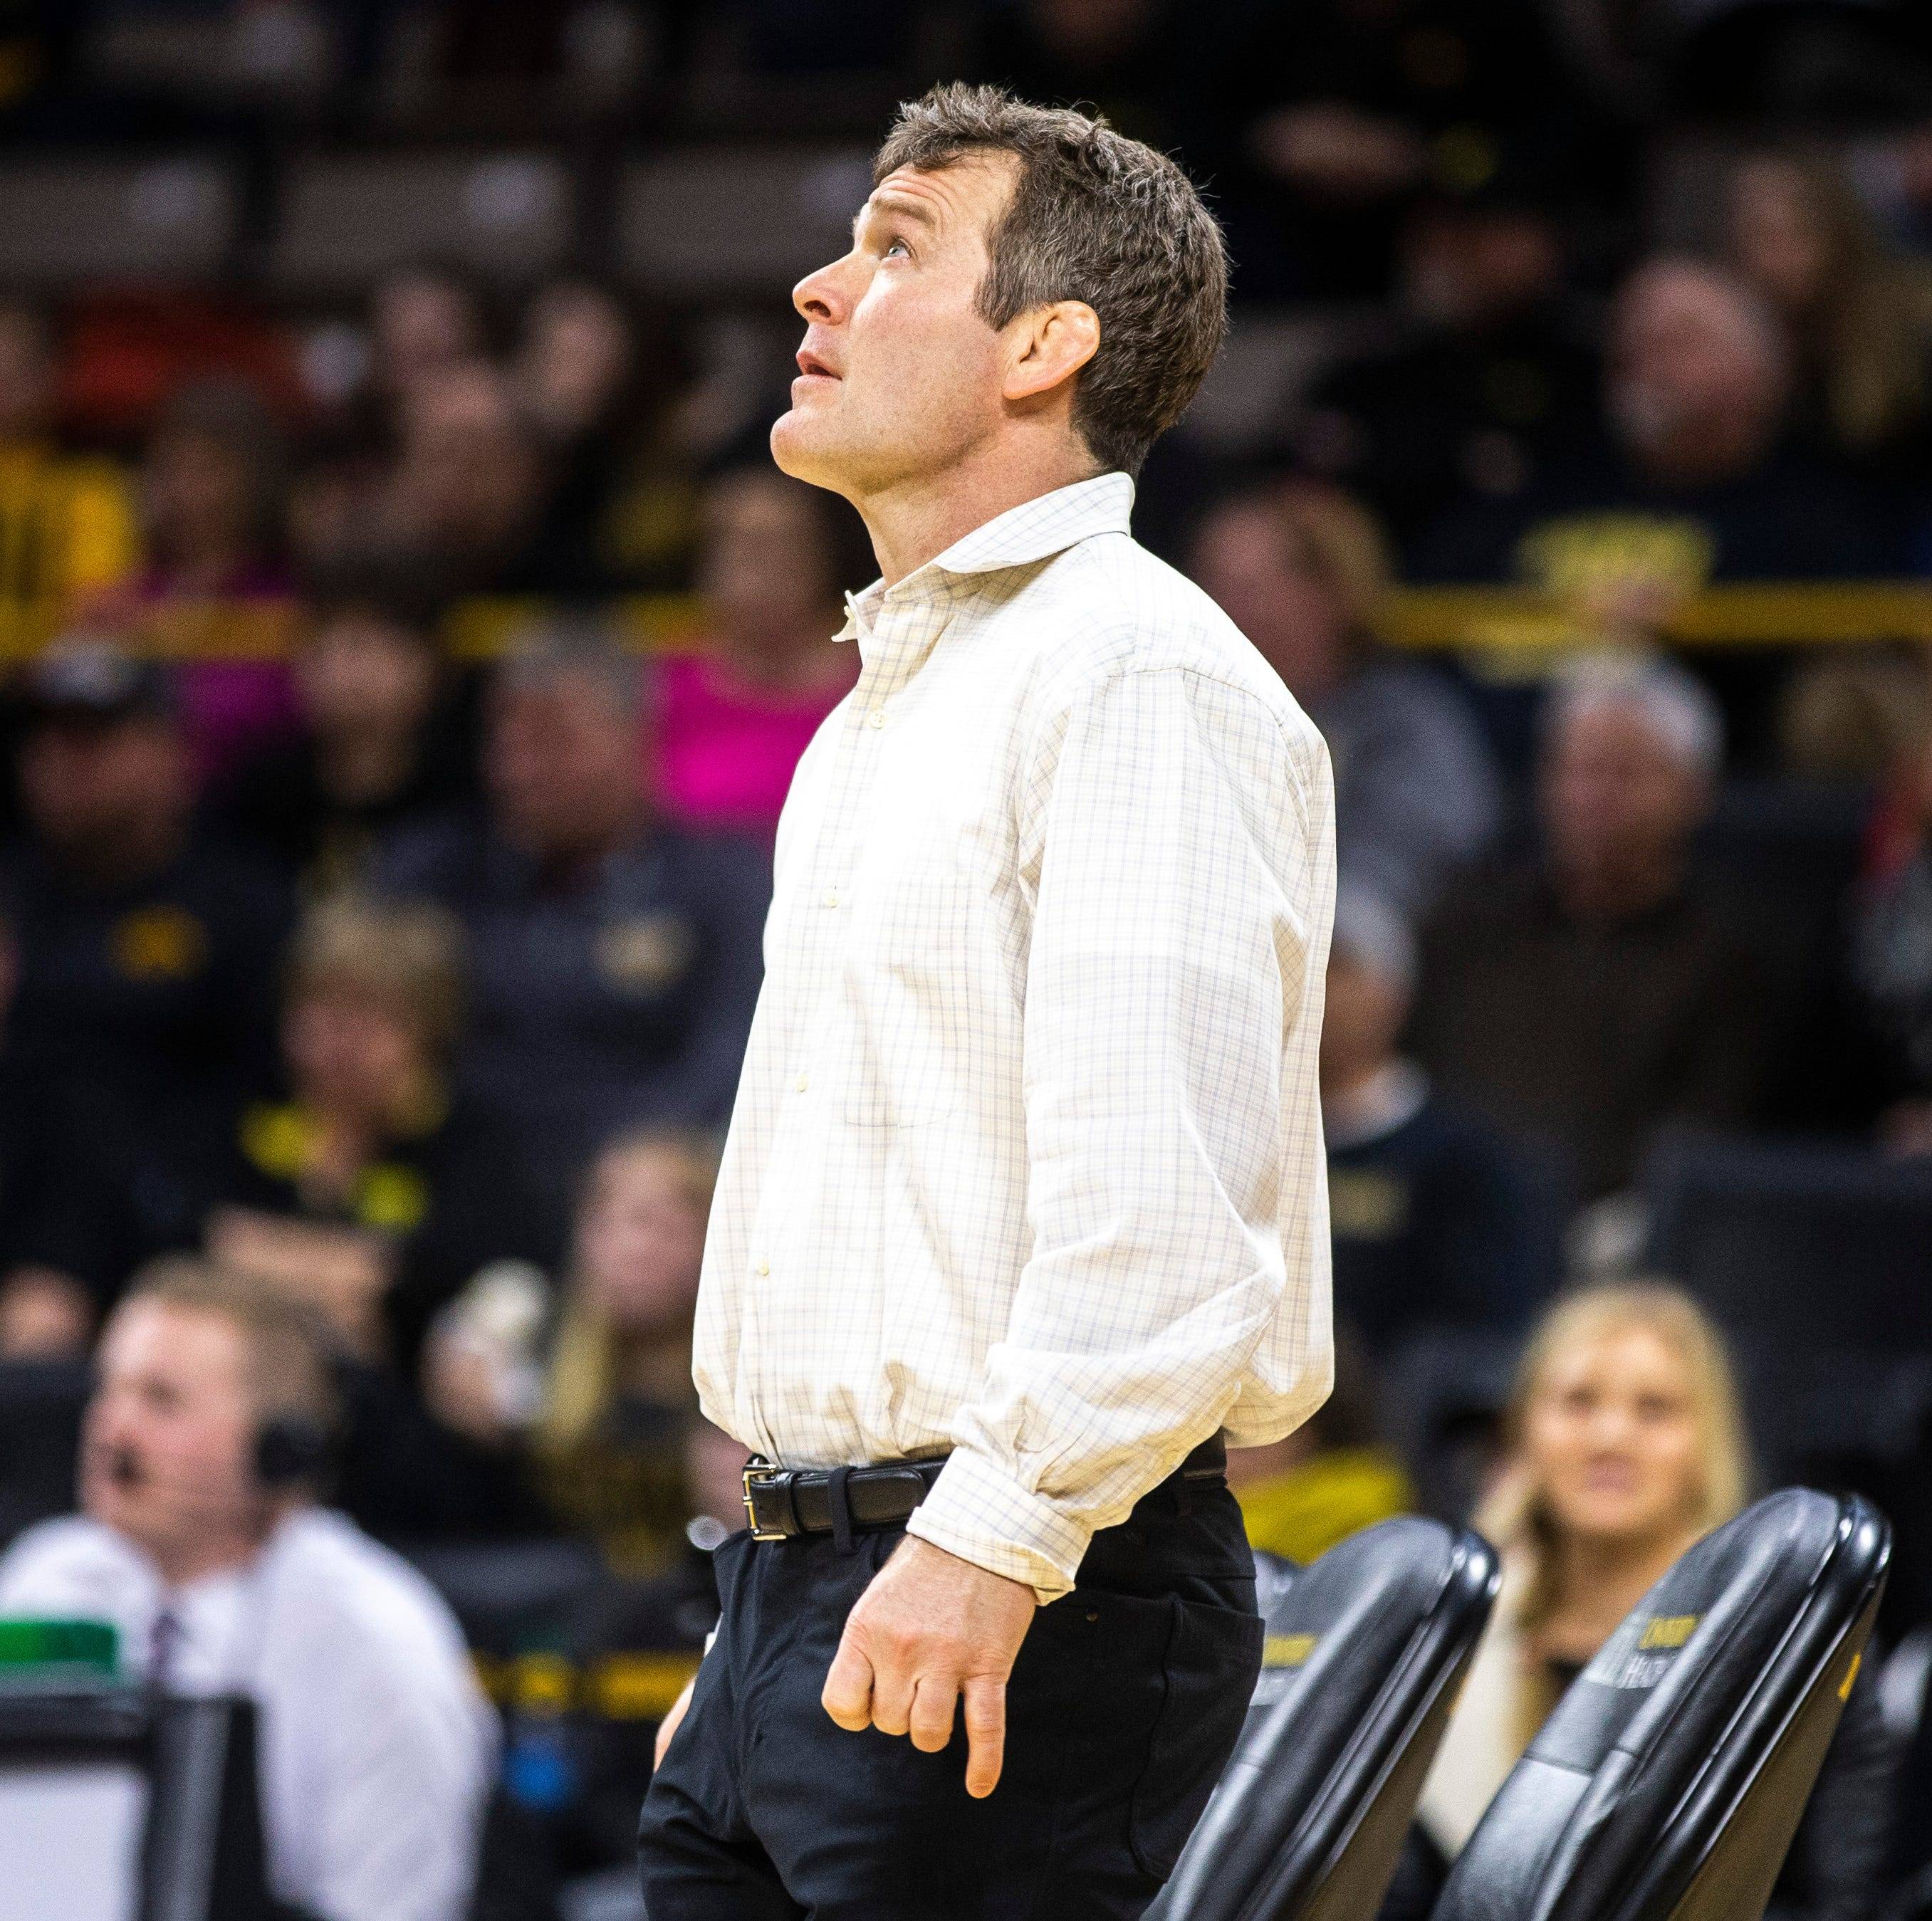 Sunday's wrestling dual between Iowa and Oklahoma State will feature 'high-octane' matchups